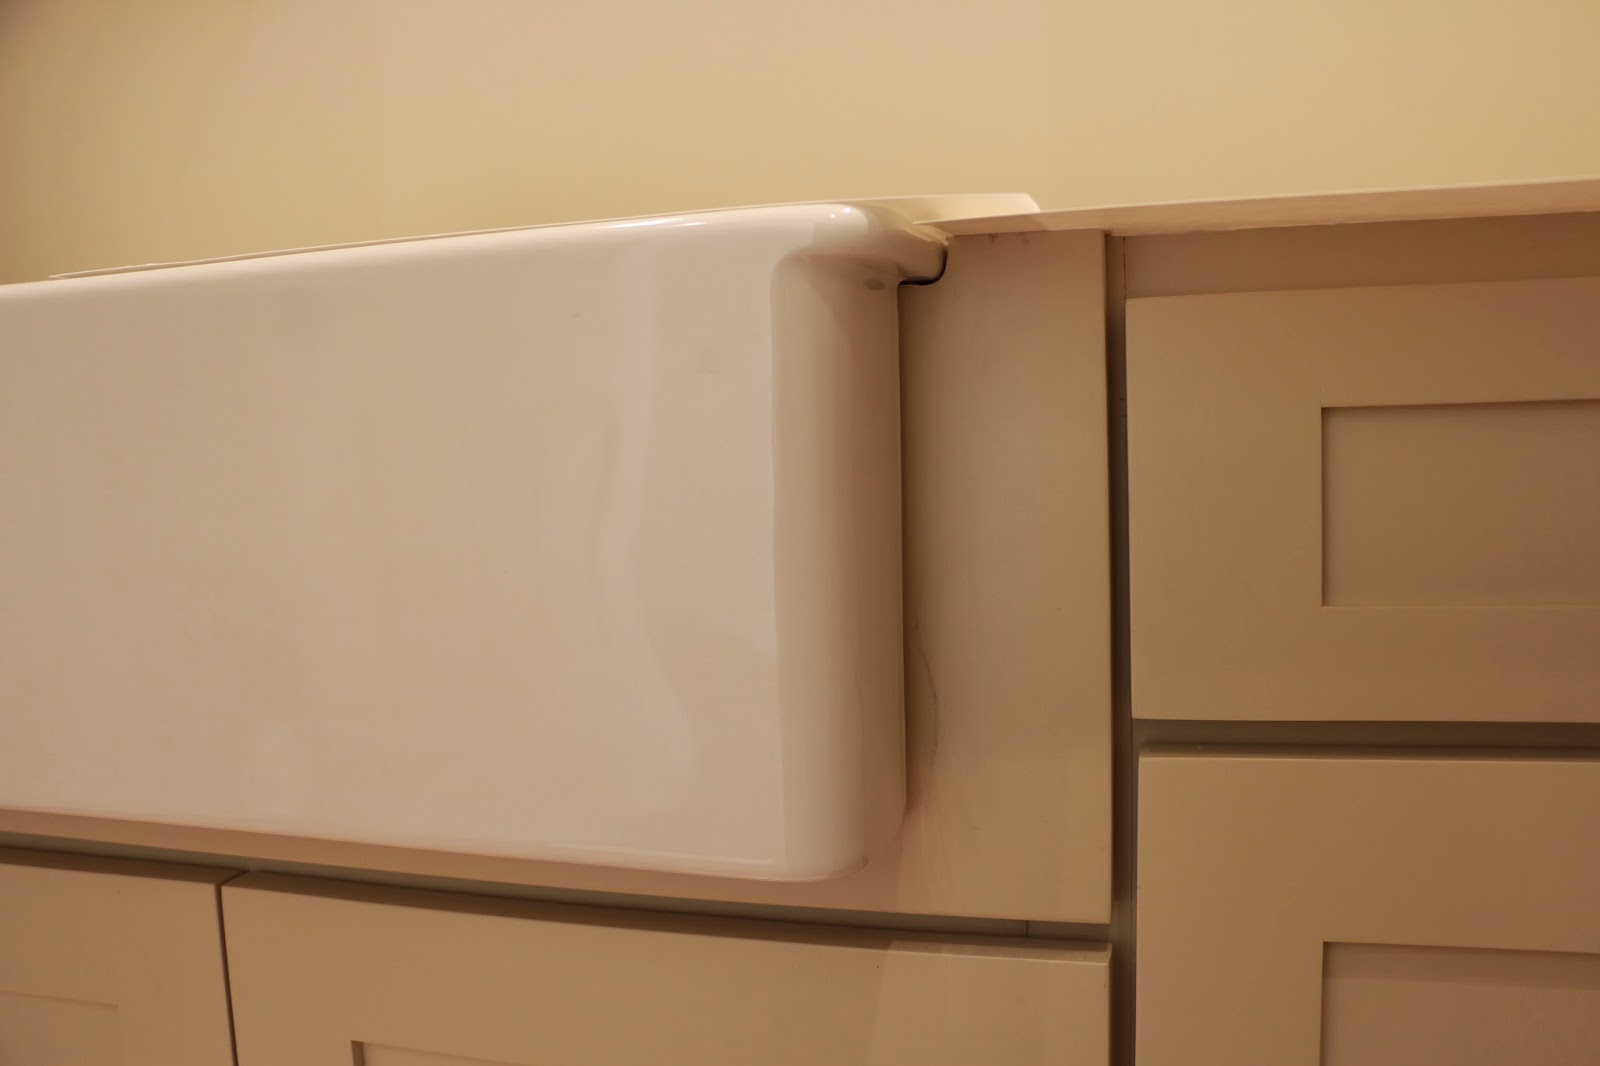 Ikea Farmhouse Sink Undermount Rx34 Roccommunity